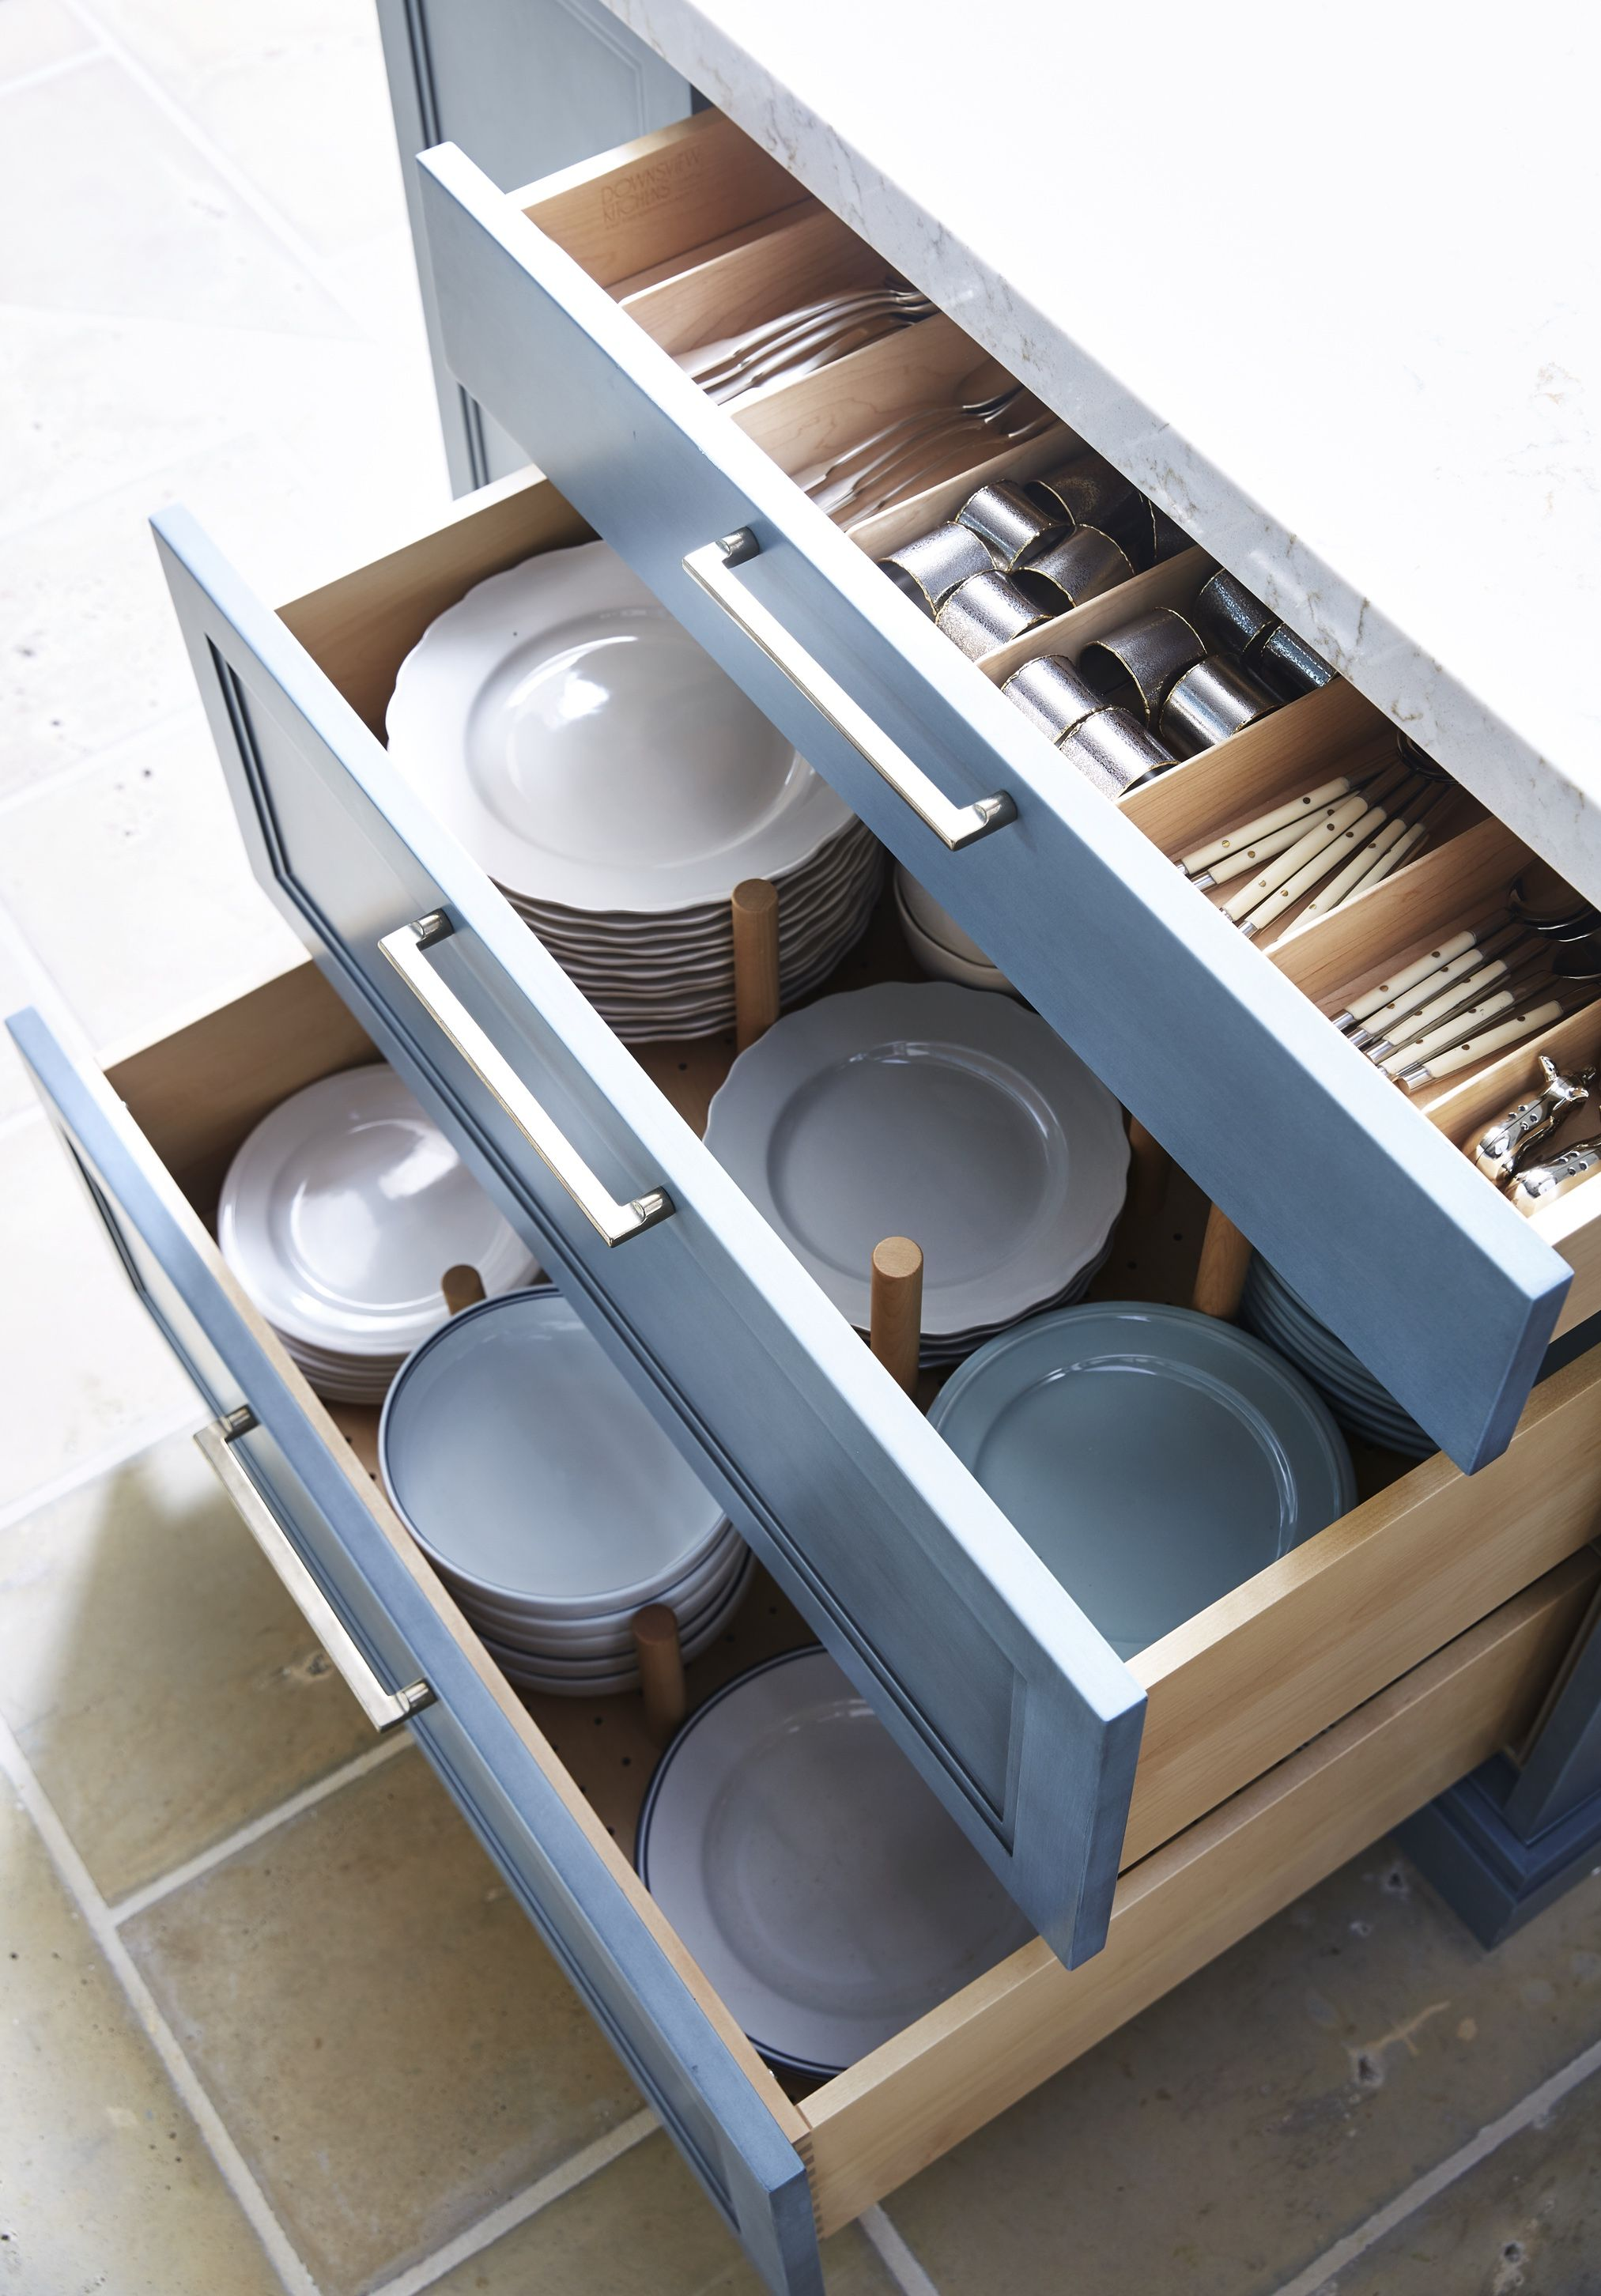 Why You Should Be Storing Your Plates in Drawers, Not Cabinets